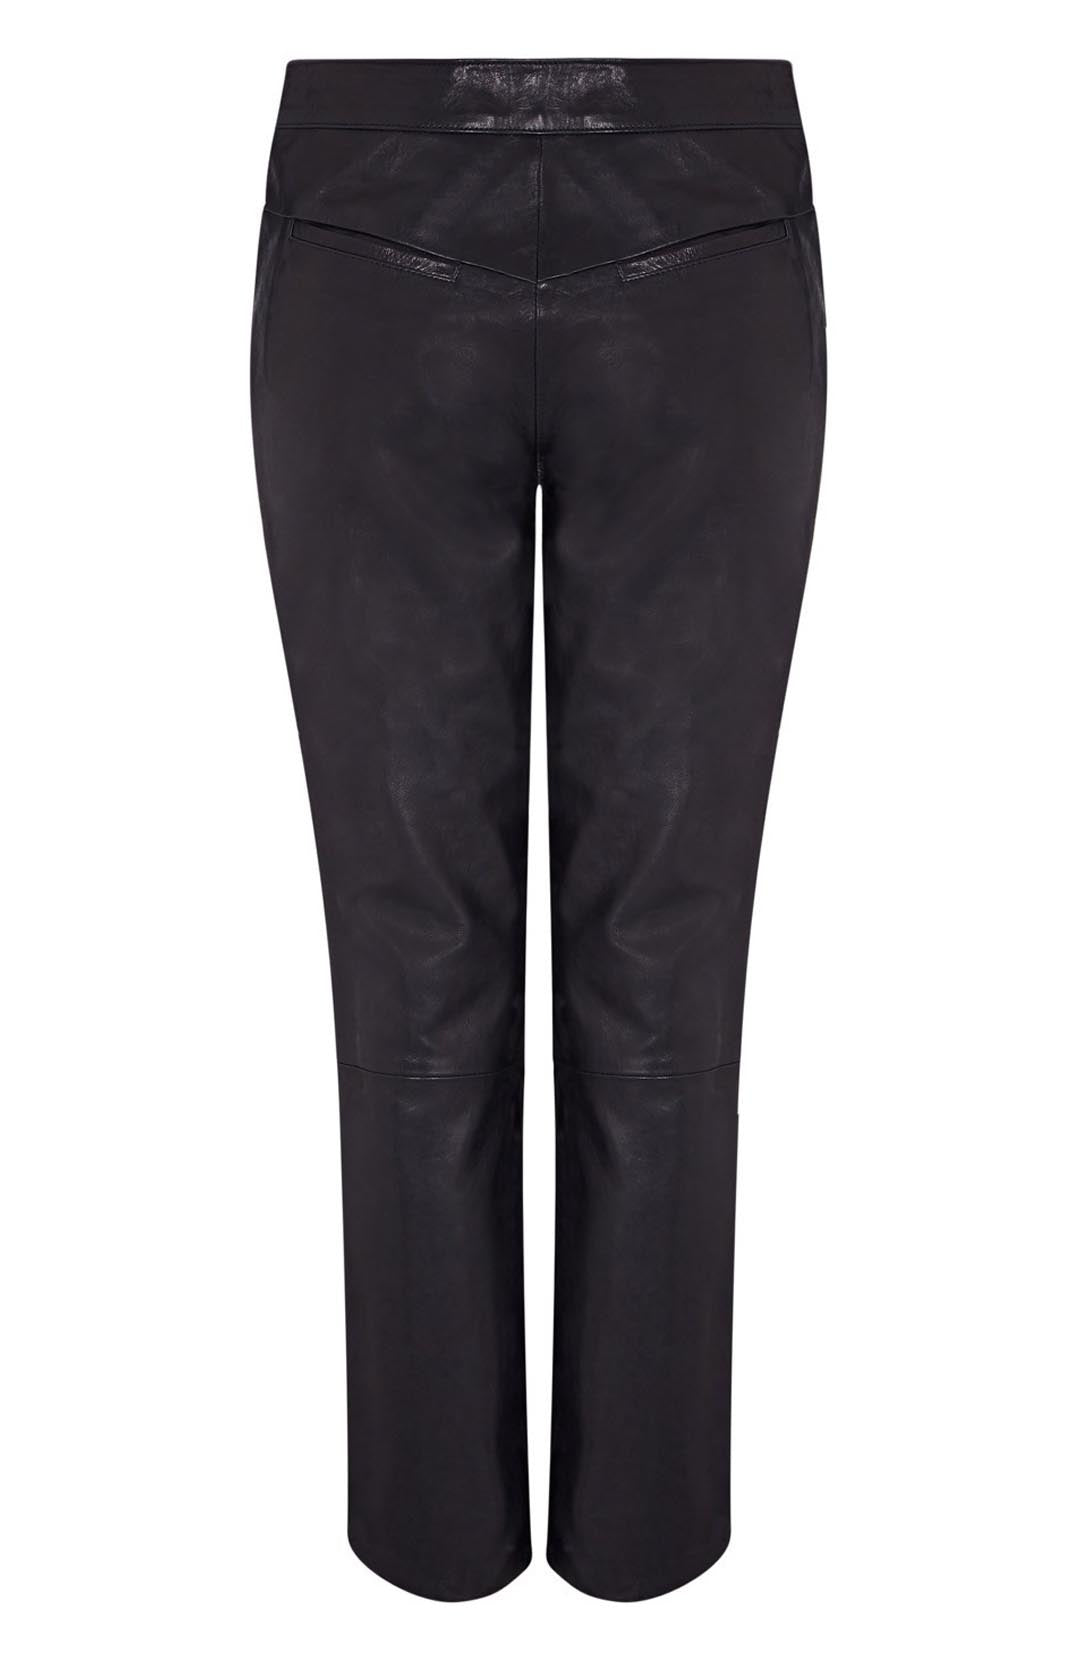 womens cropped leather pant | cropped leather pant | leather cropped pants